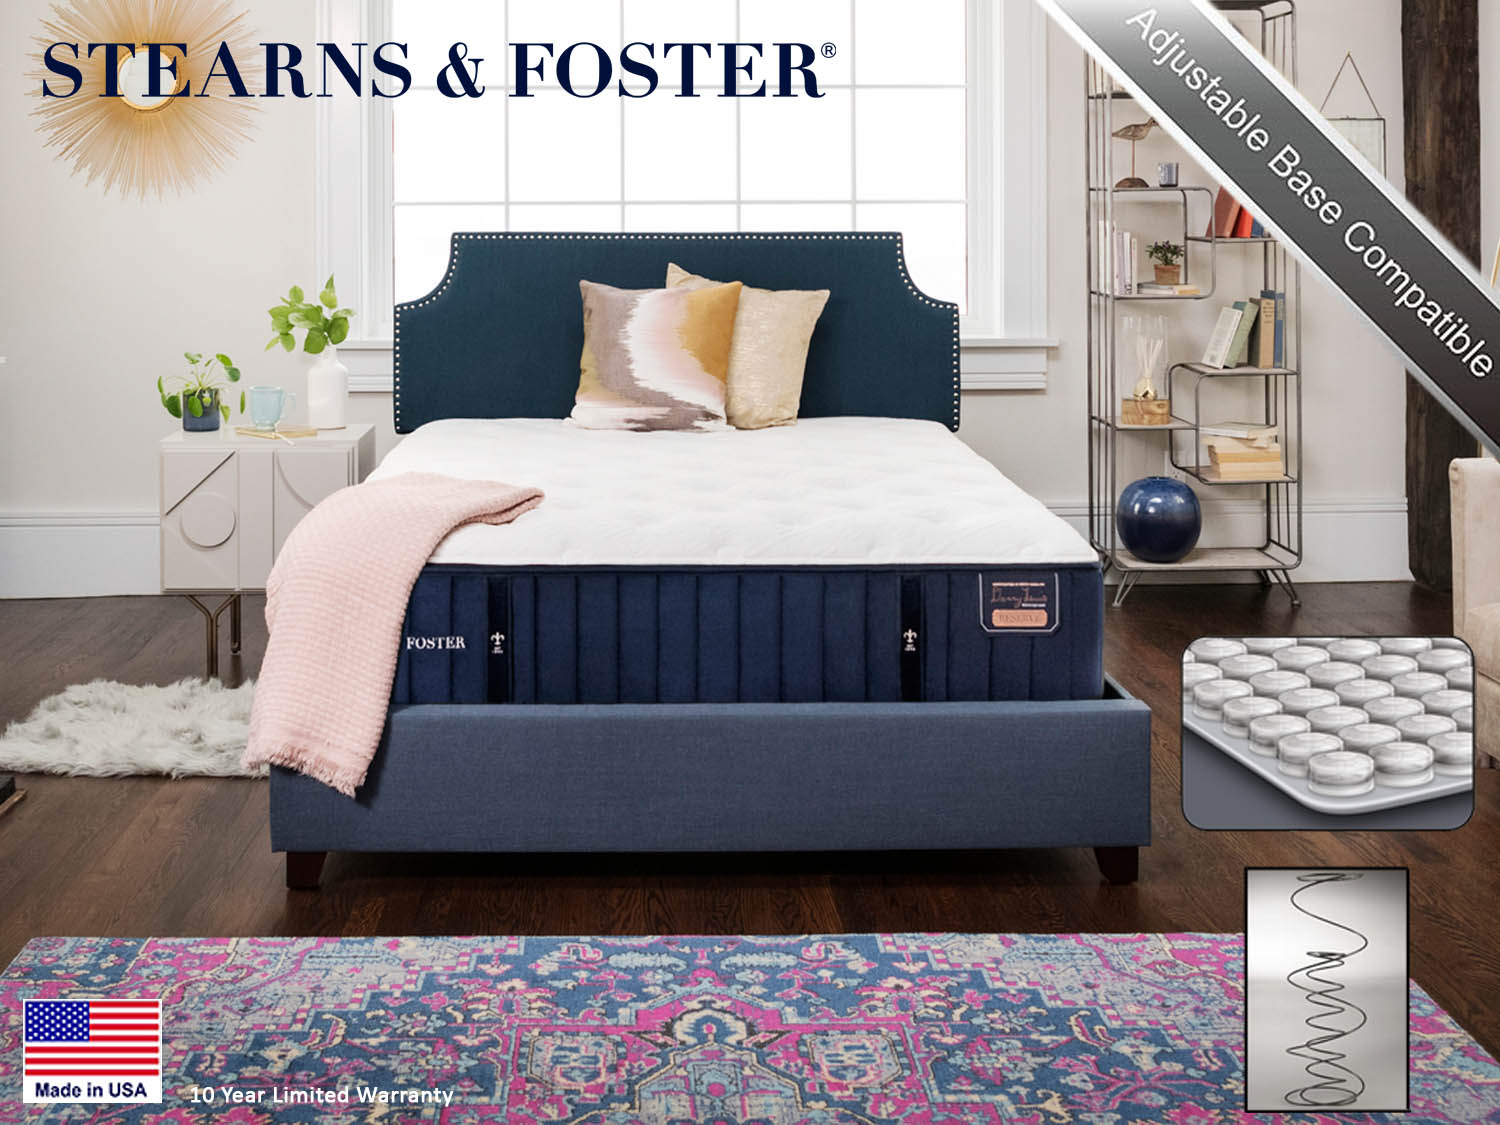 tearns & Foster, Hepburn PL, Luxury Plush, Reserve, Mattress, Mattresses, Sealy, Barbo's Furniture